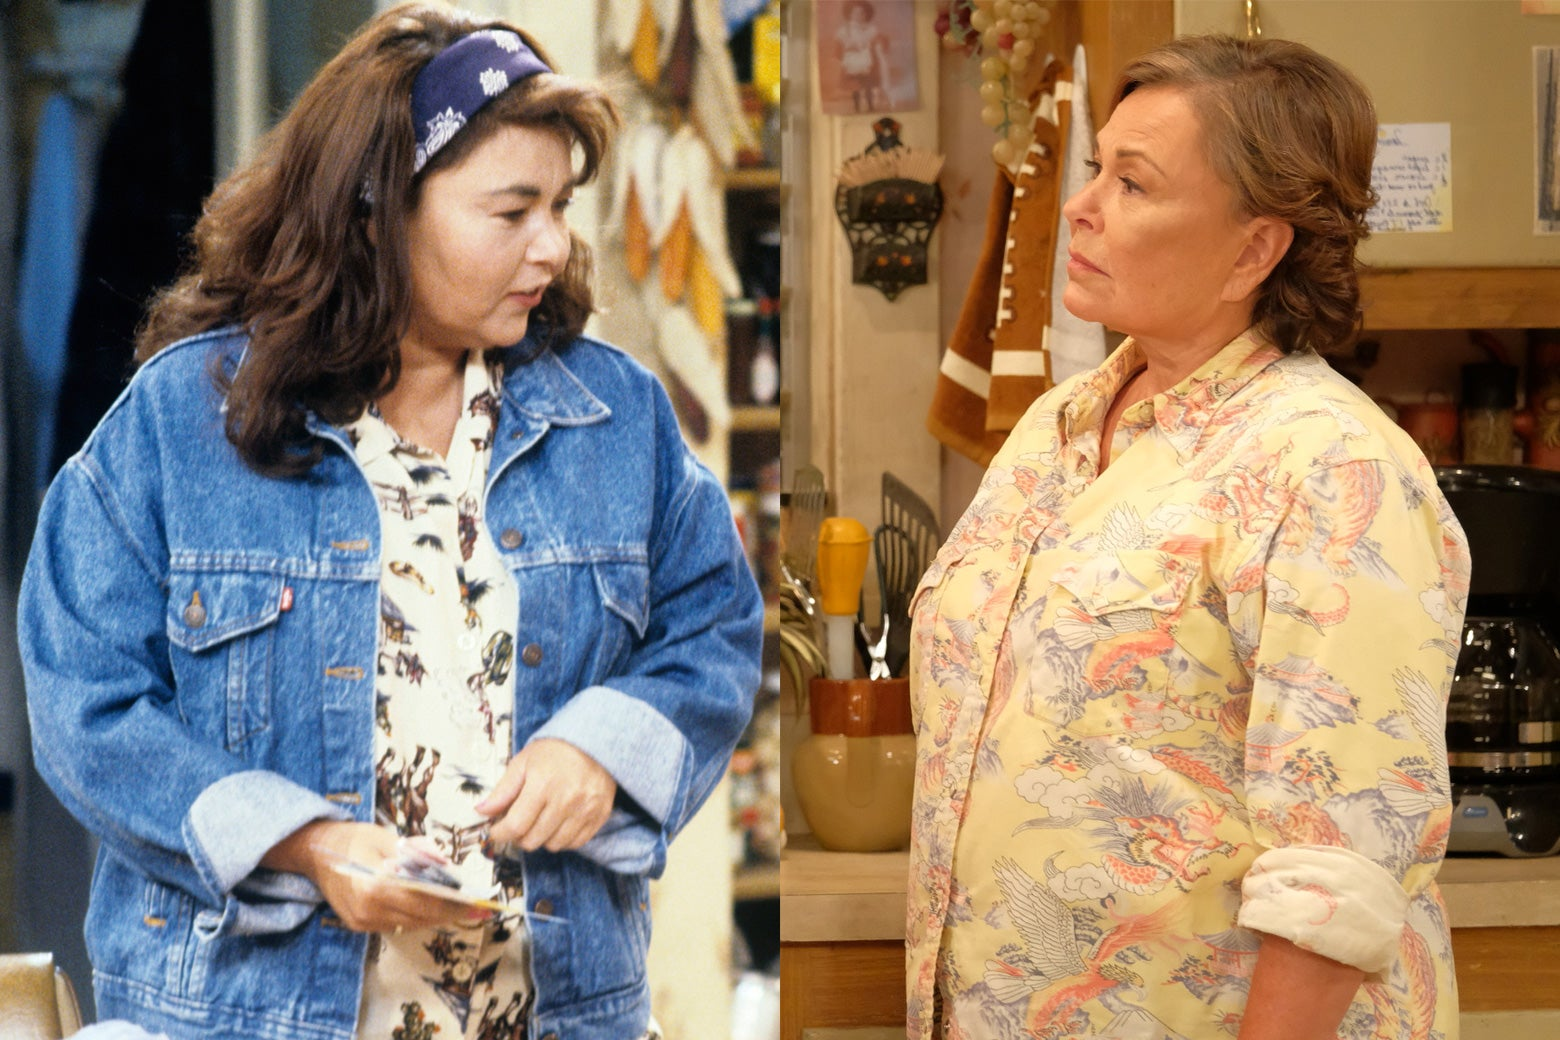 Roseanne Barr in the original series and the revival.